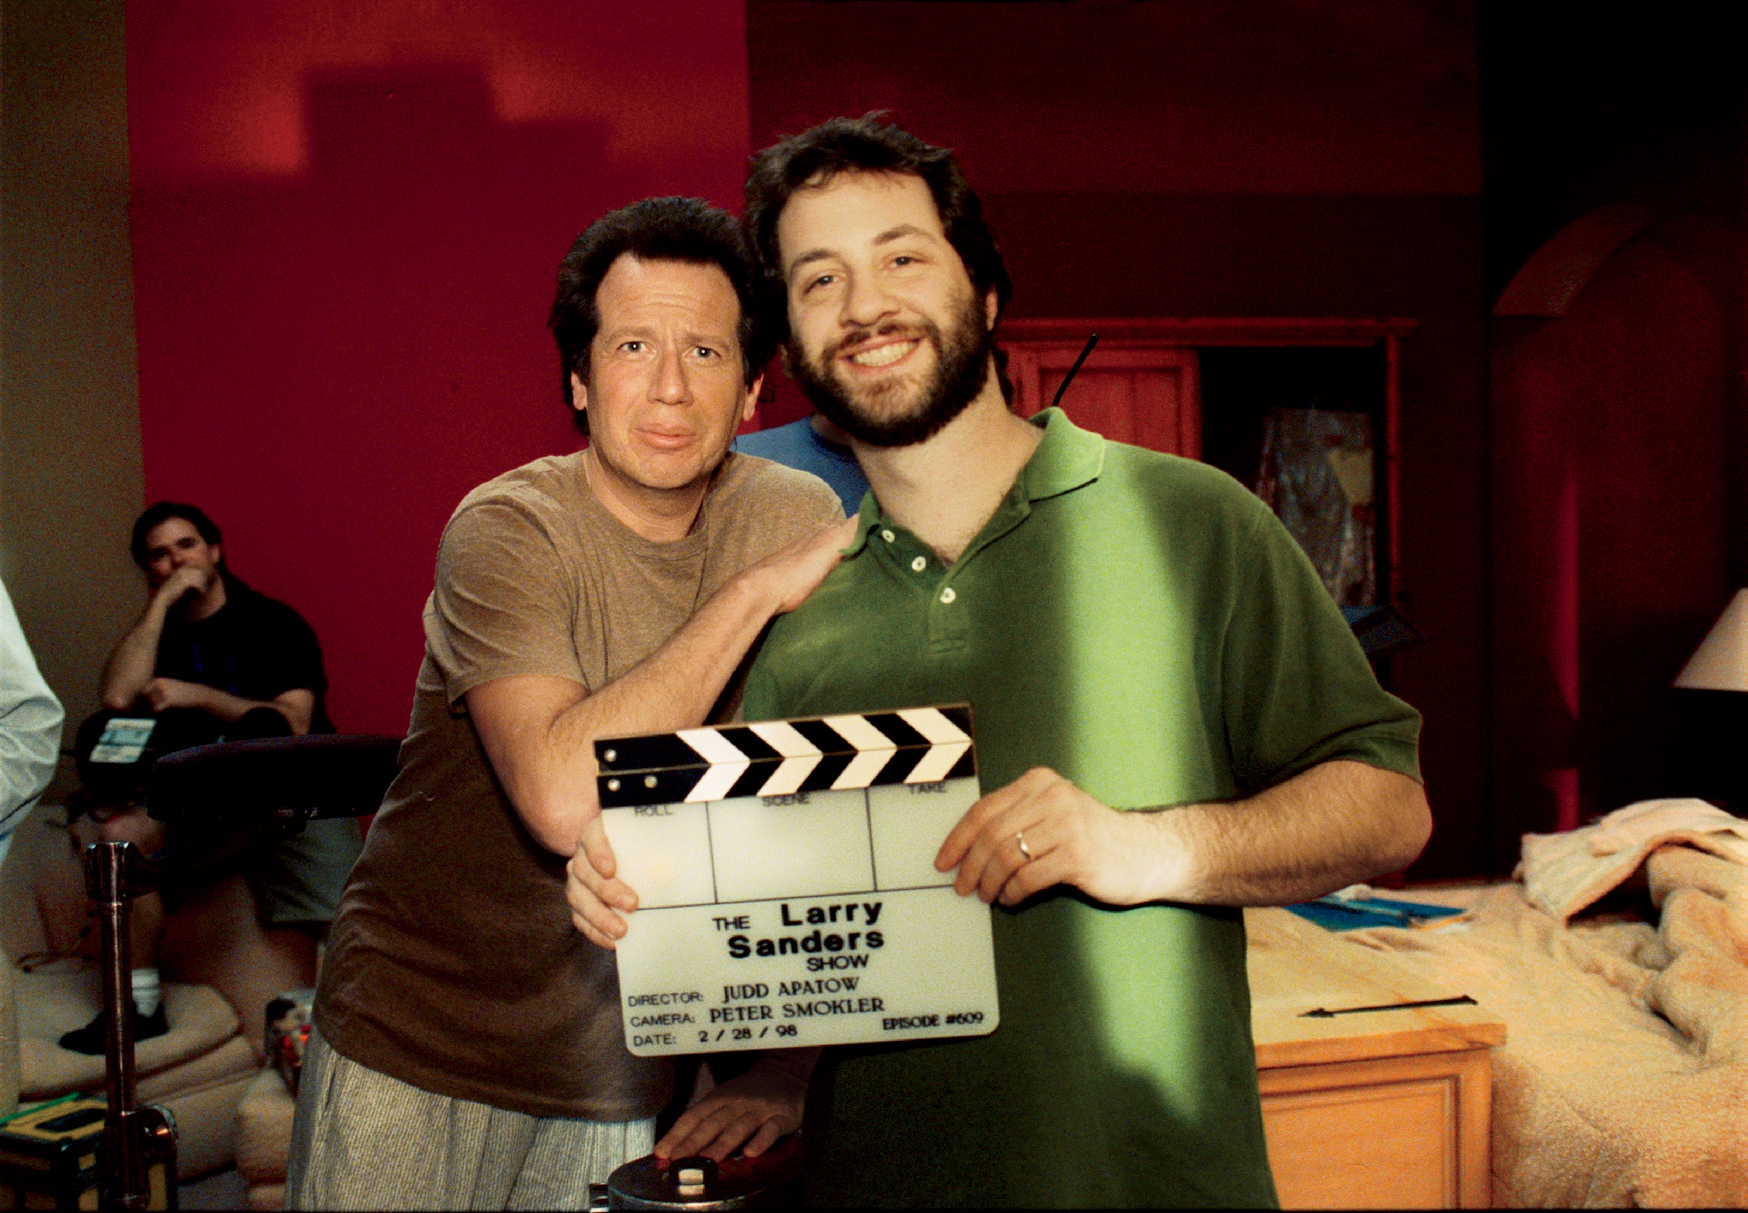 Peace Love And Dick Jokes Judd Apatow On The Zen Diaries Of Garry